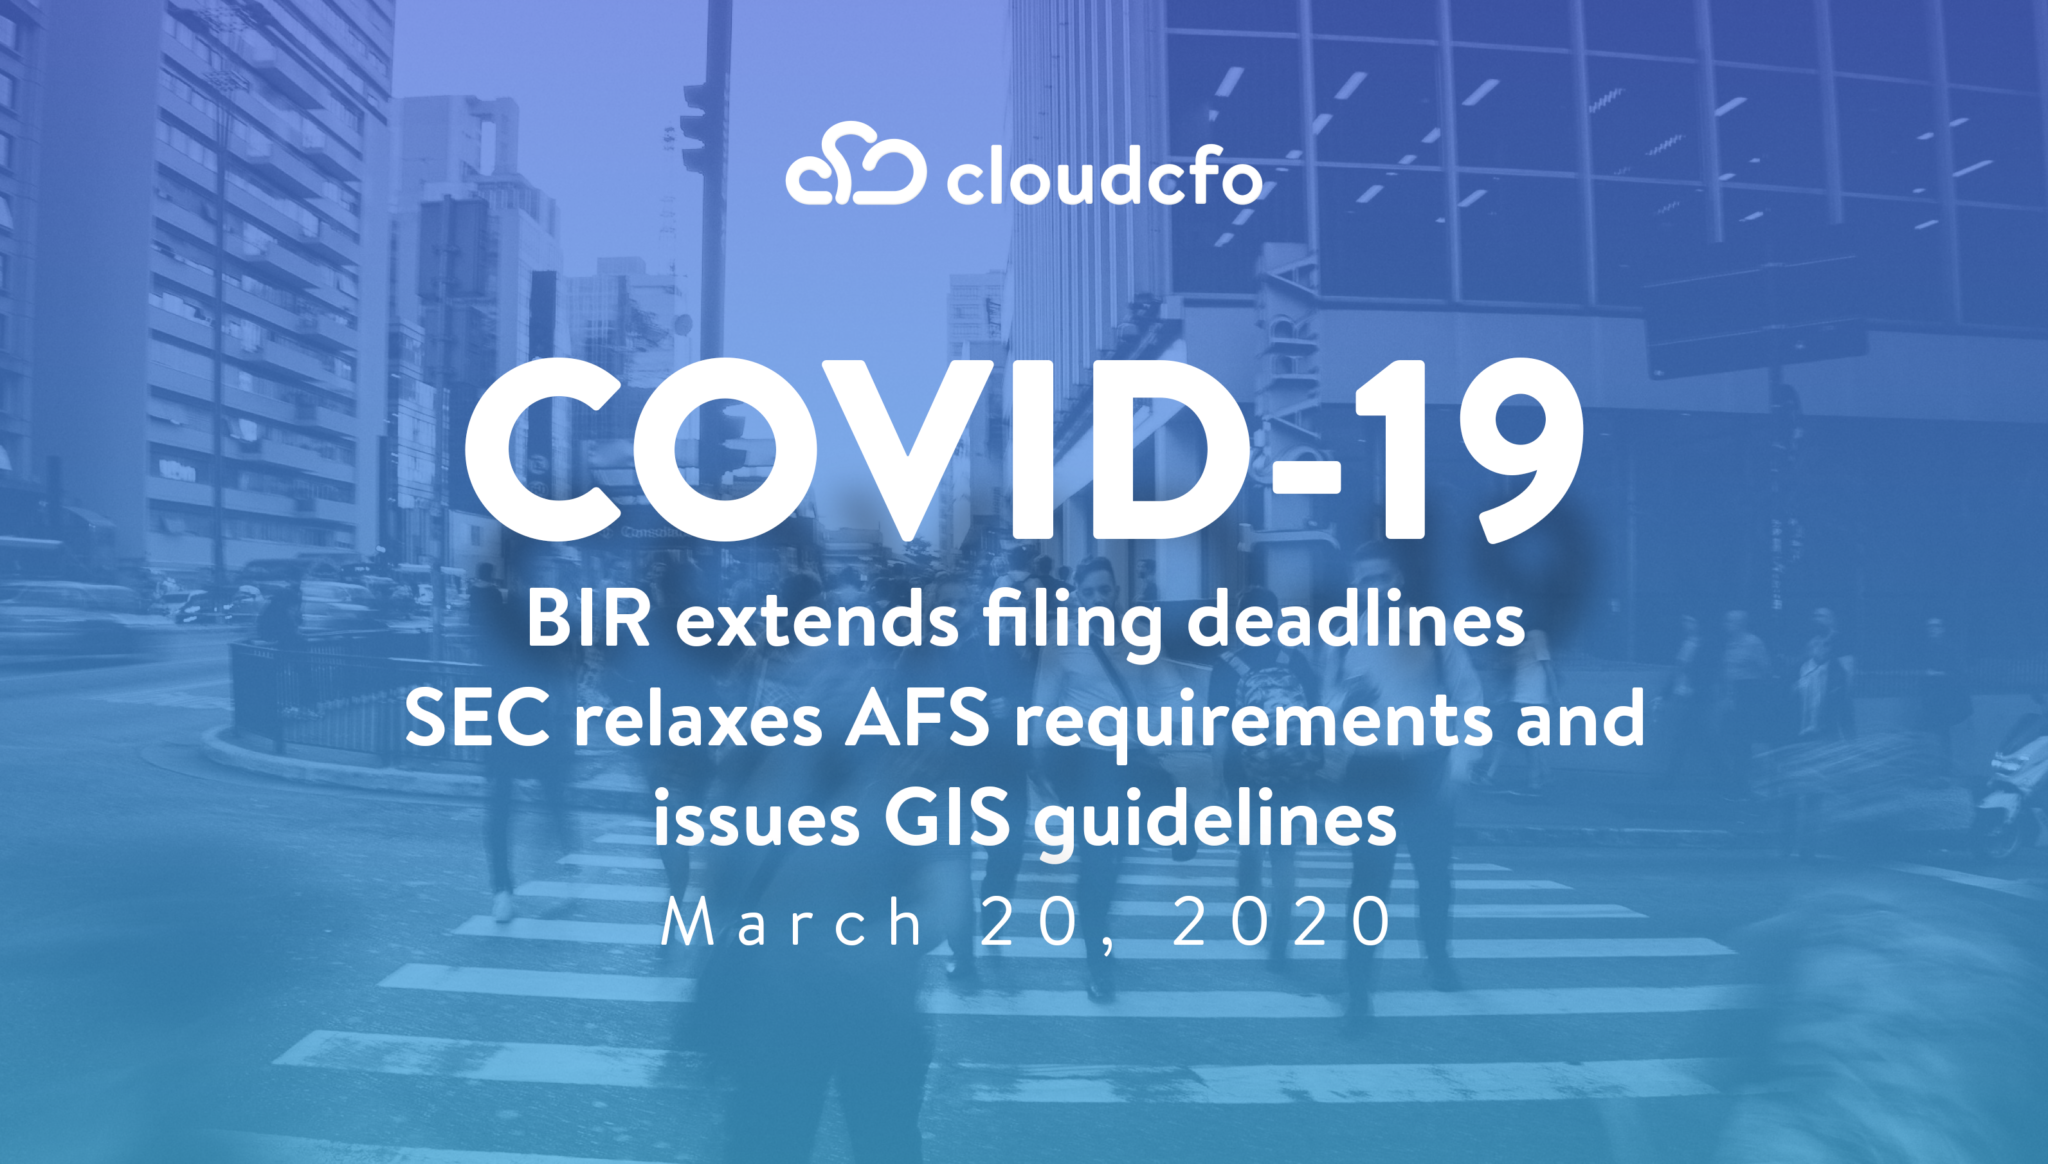 COVID-19: BIR extends filing deadlines;  SEC relaxes AFS requirements and issues GIS guidelines  – 20 March 2020